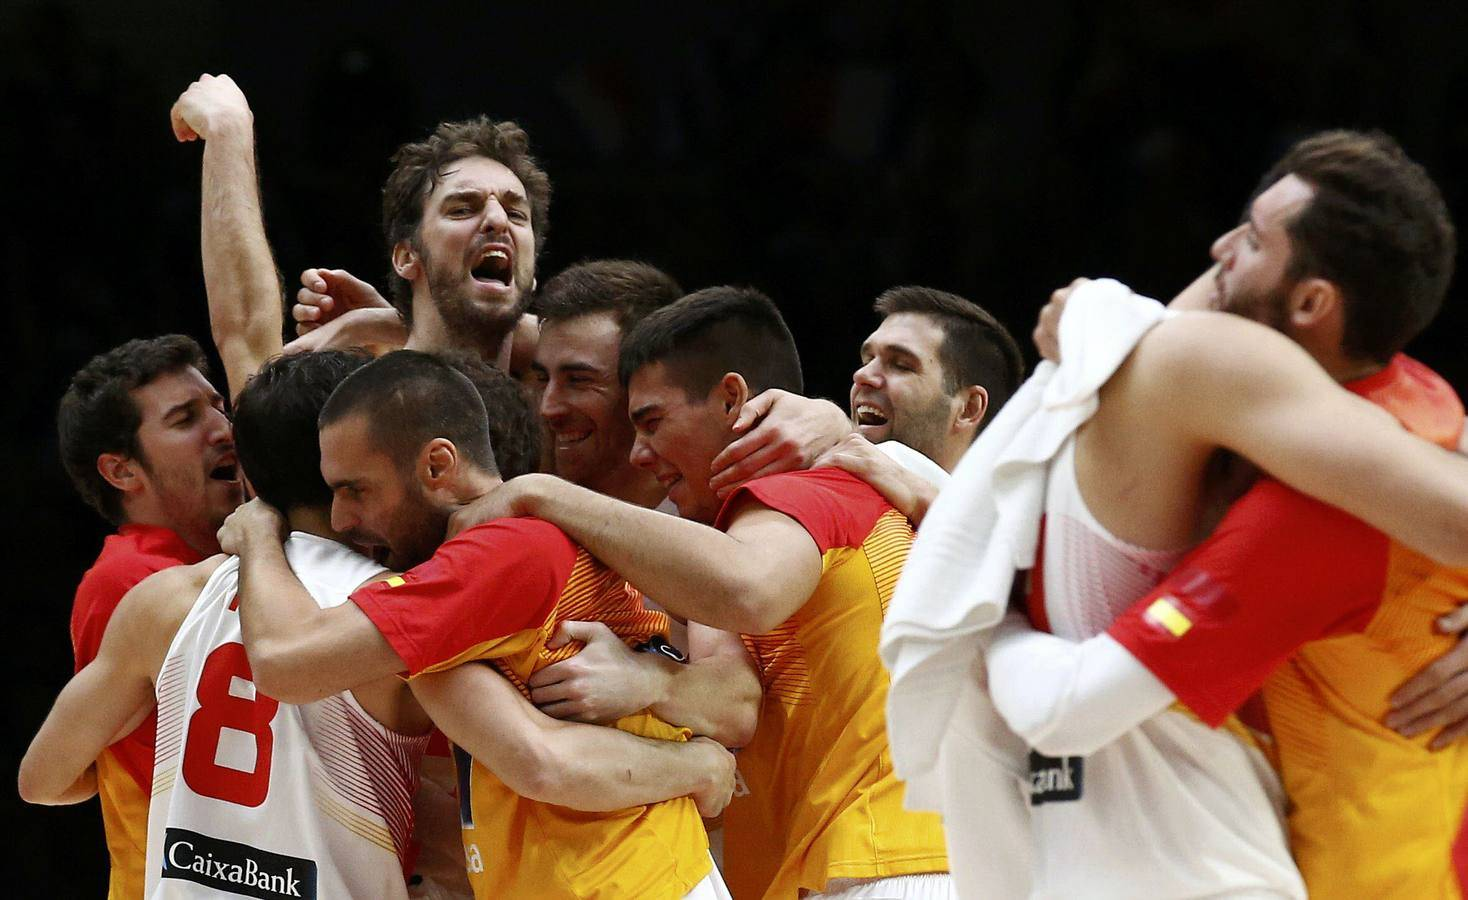 Spain's Paul Gasol (C) and team mates celebrate victory over Greece at the end of their EuroBasket 2015 quarter-final game at the Pierre Mauroy stadium in Villeneuve d'Ascq, near Lille, France, September 15, 2015. REUTERS/Benoit Tessier